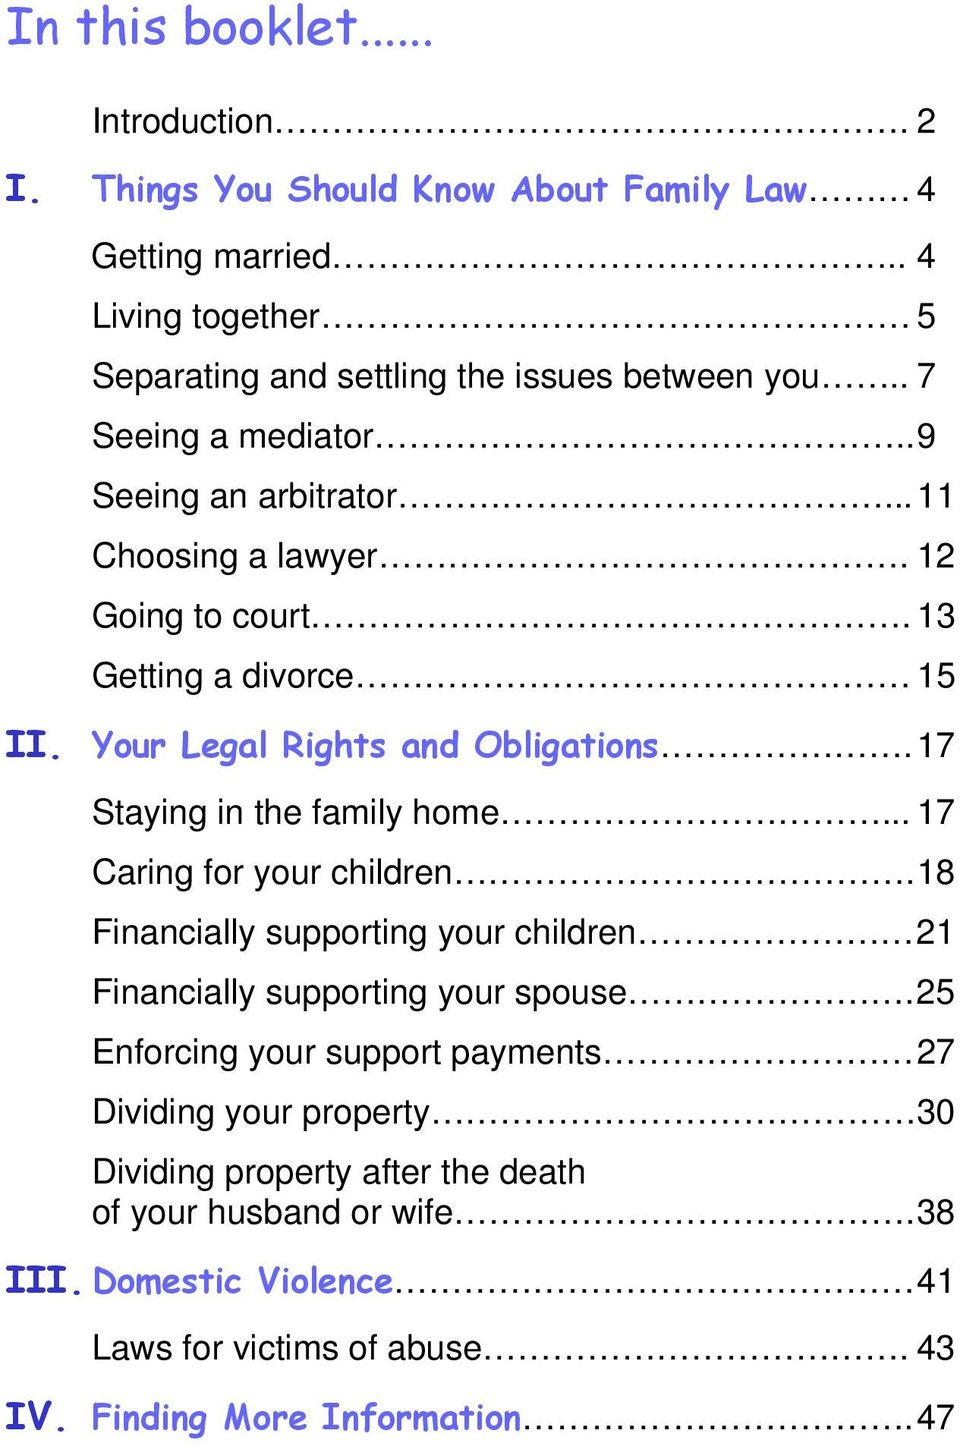 17 Staying in the family home... 17 Caring for your children. 18 Financially supporting your children 21 Financially supporting your spouse.